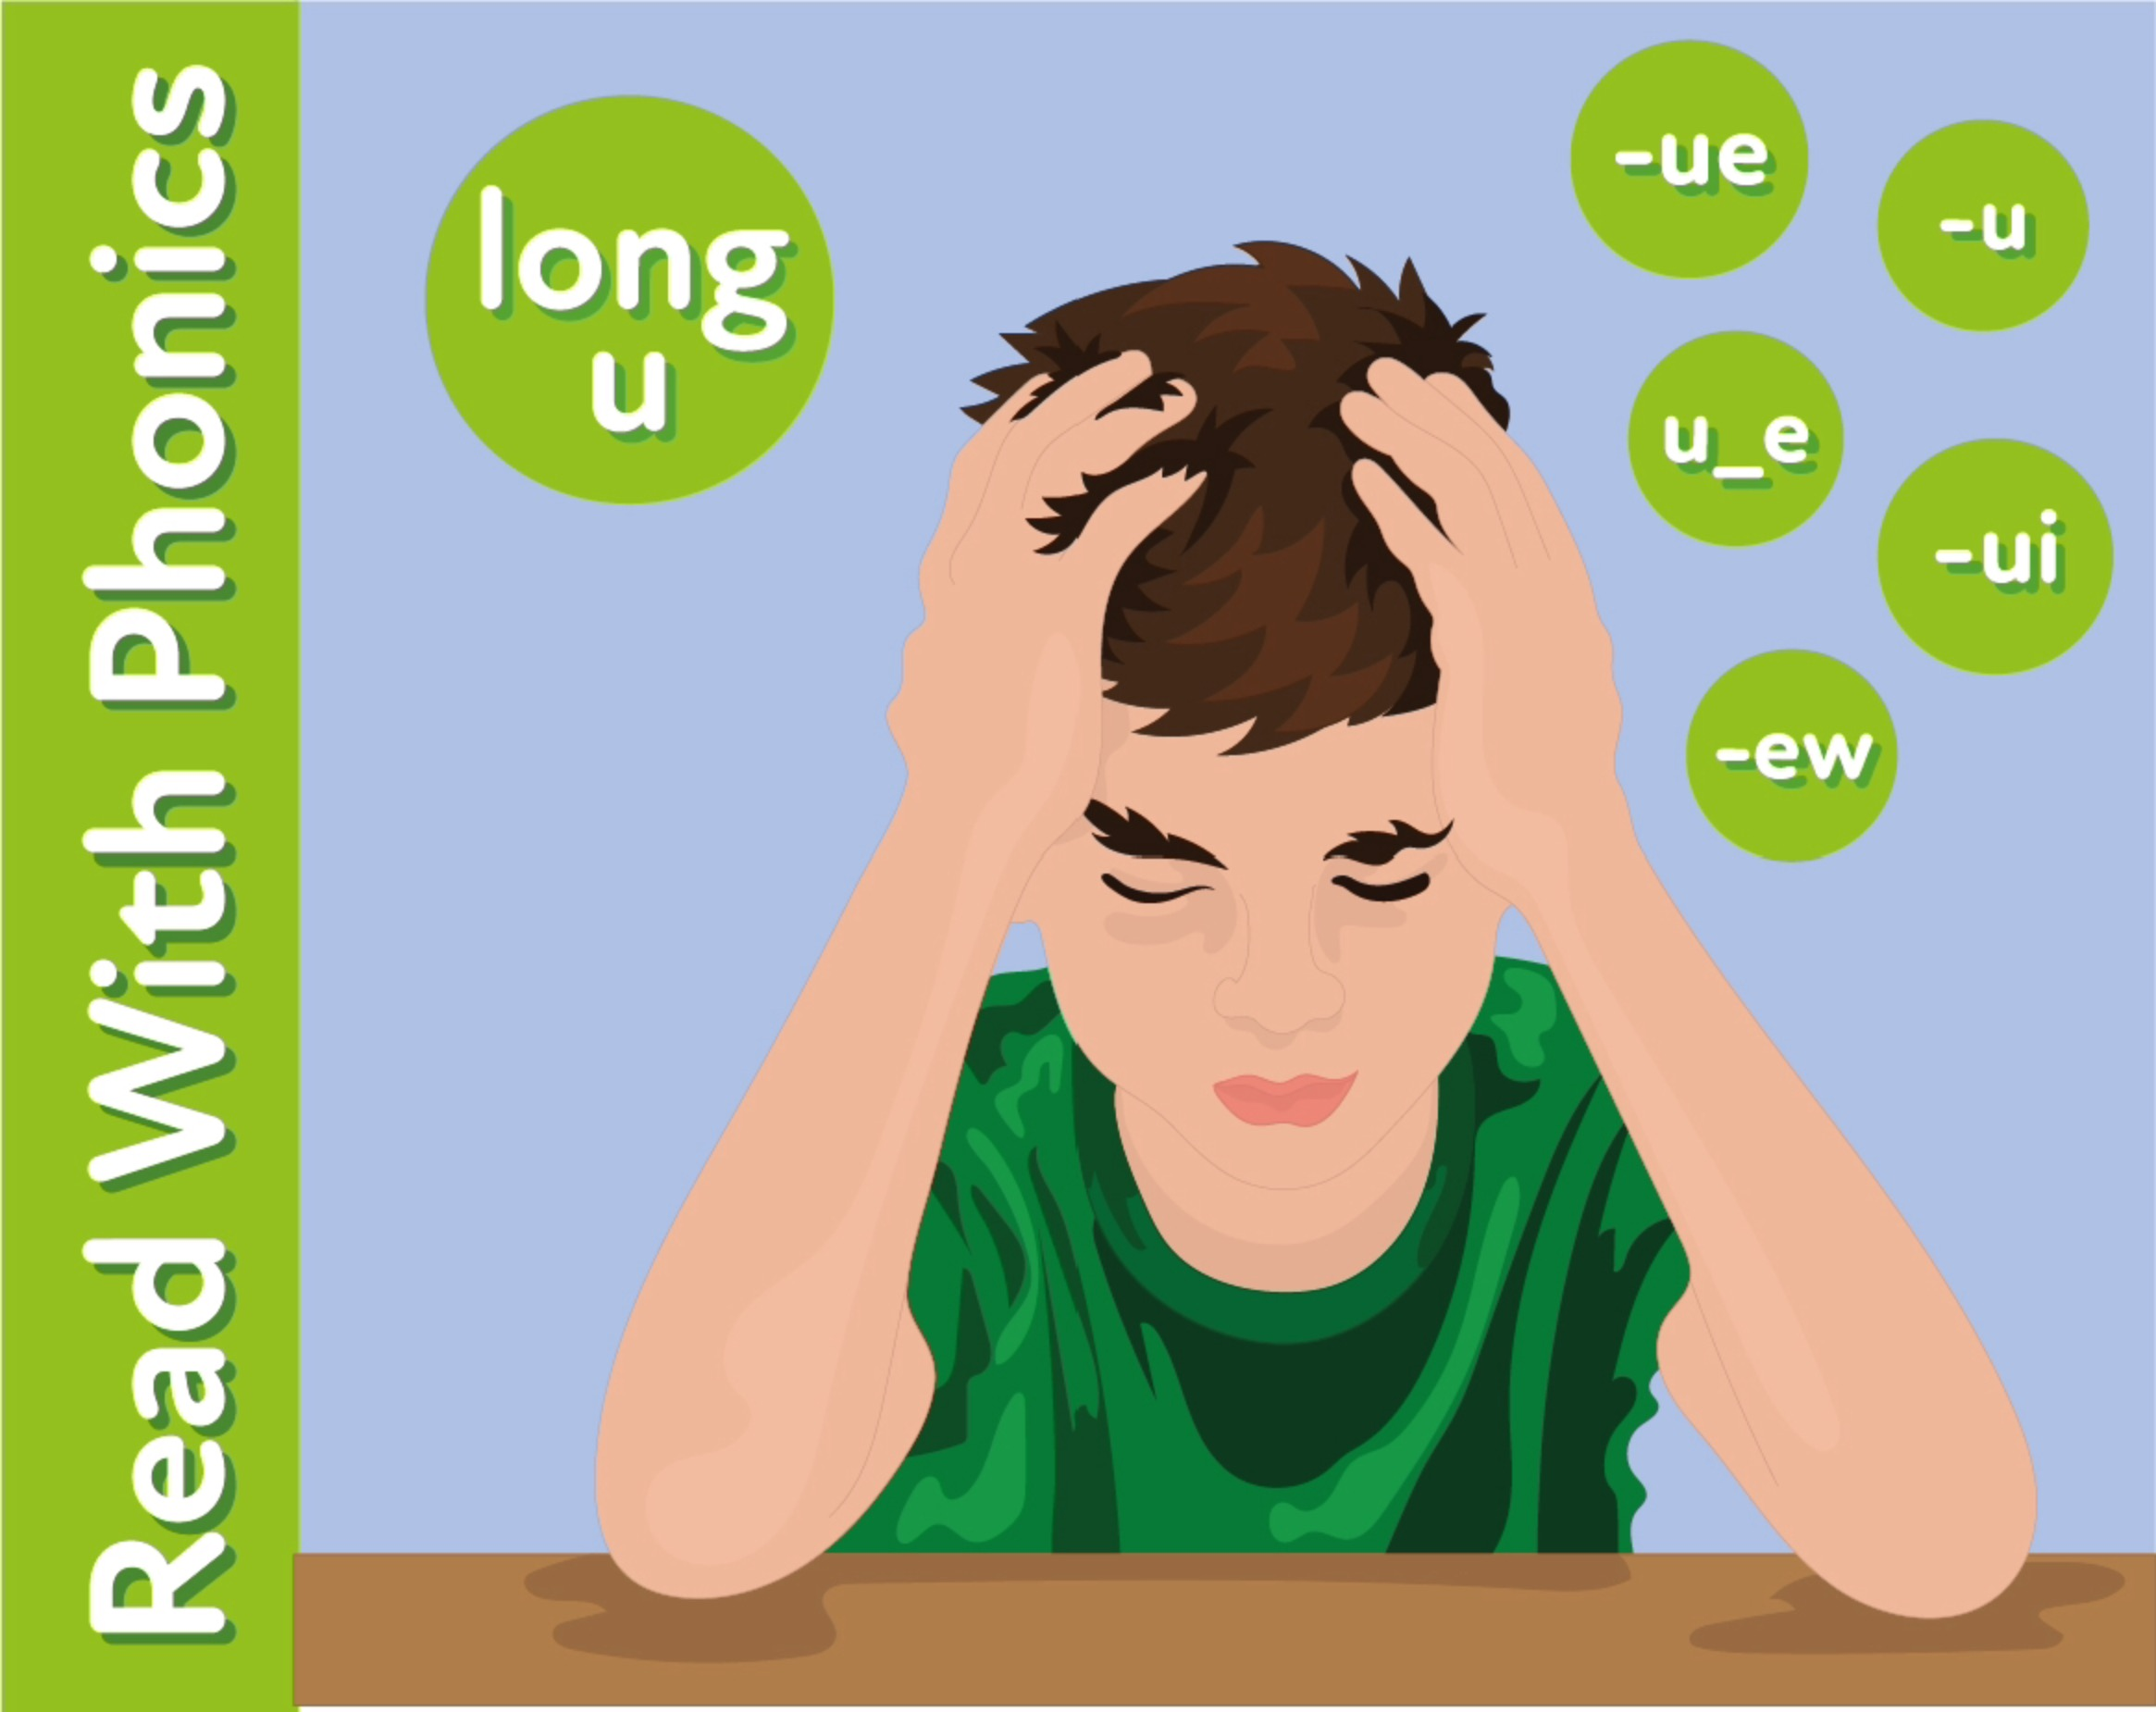 The Day Before School: Learn The Phonic Sound 'ue'